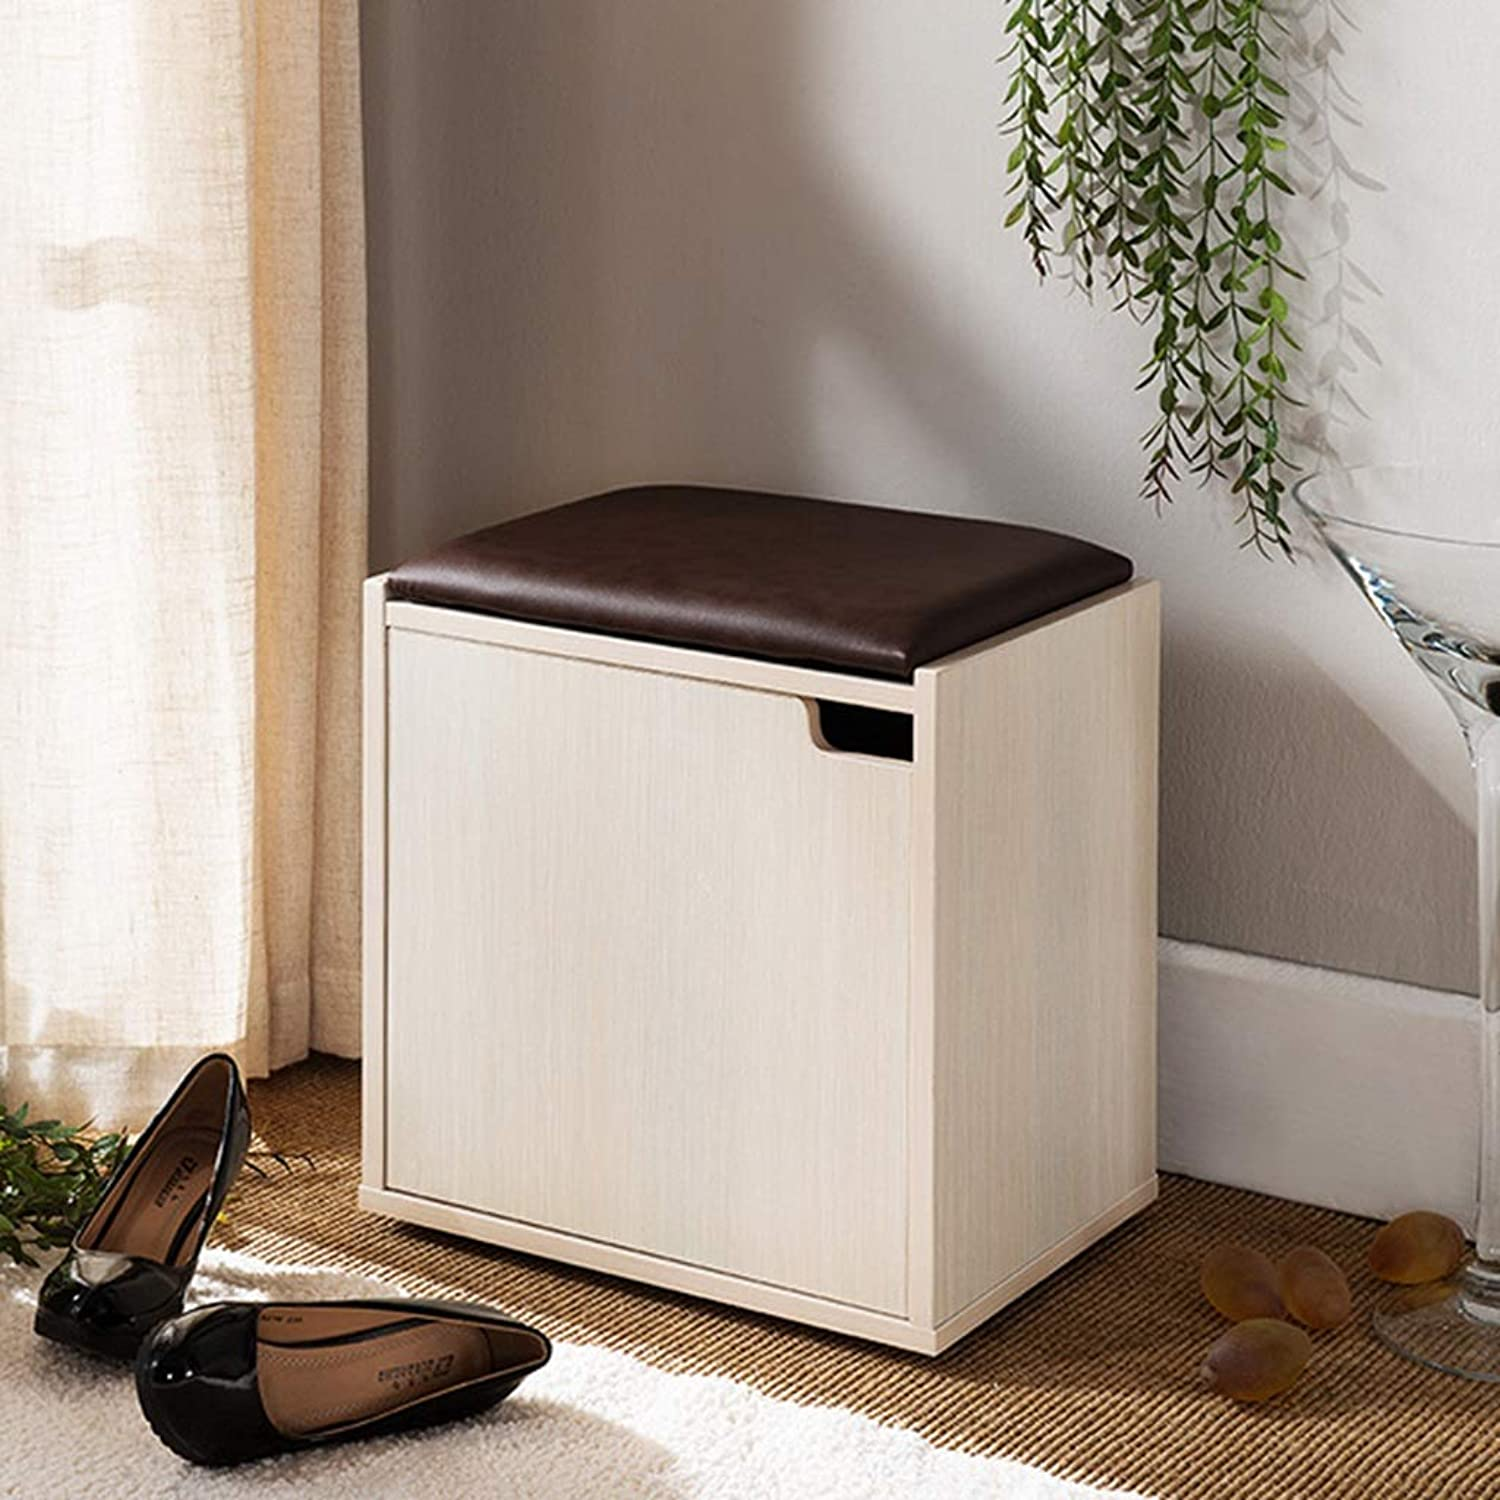 Entryway shoes Rack Bench Solid Wood Small shoes Cabinet Modern Simplicity shoes Storage Bench with Cushion for Hallway,Bedroom, Etc (color   Beige)